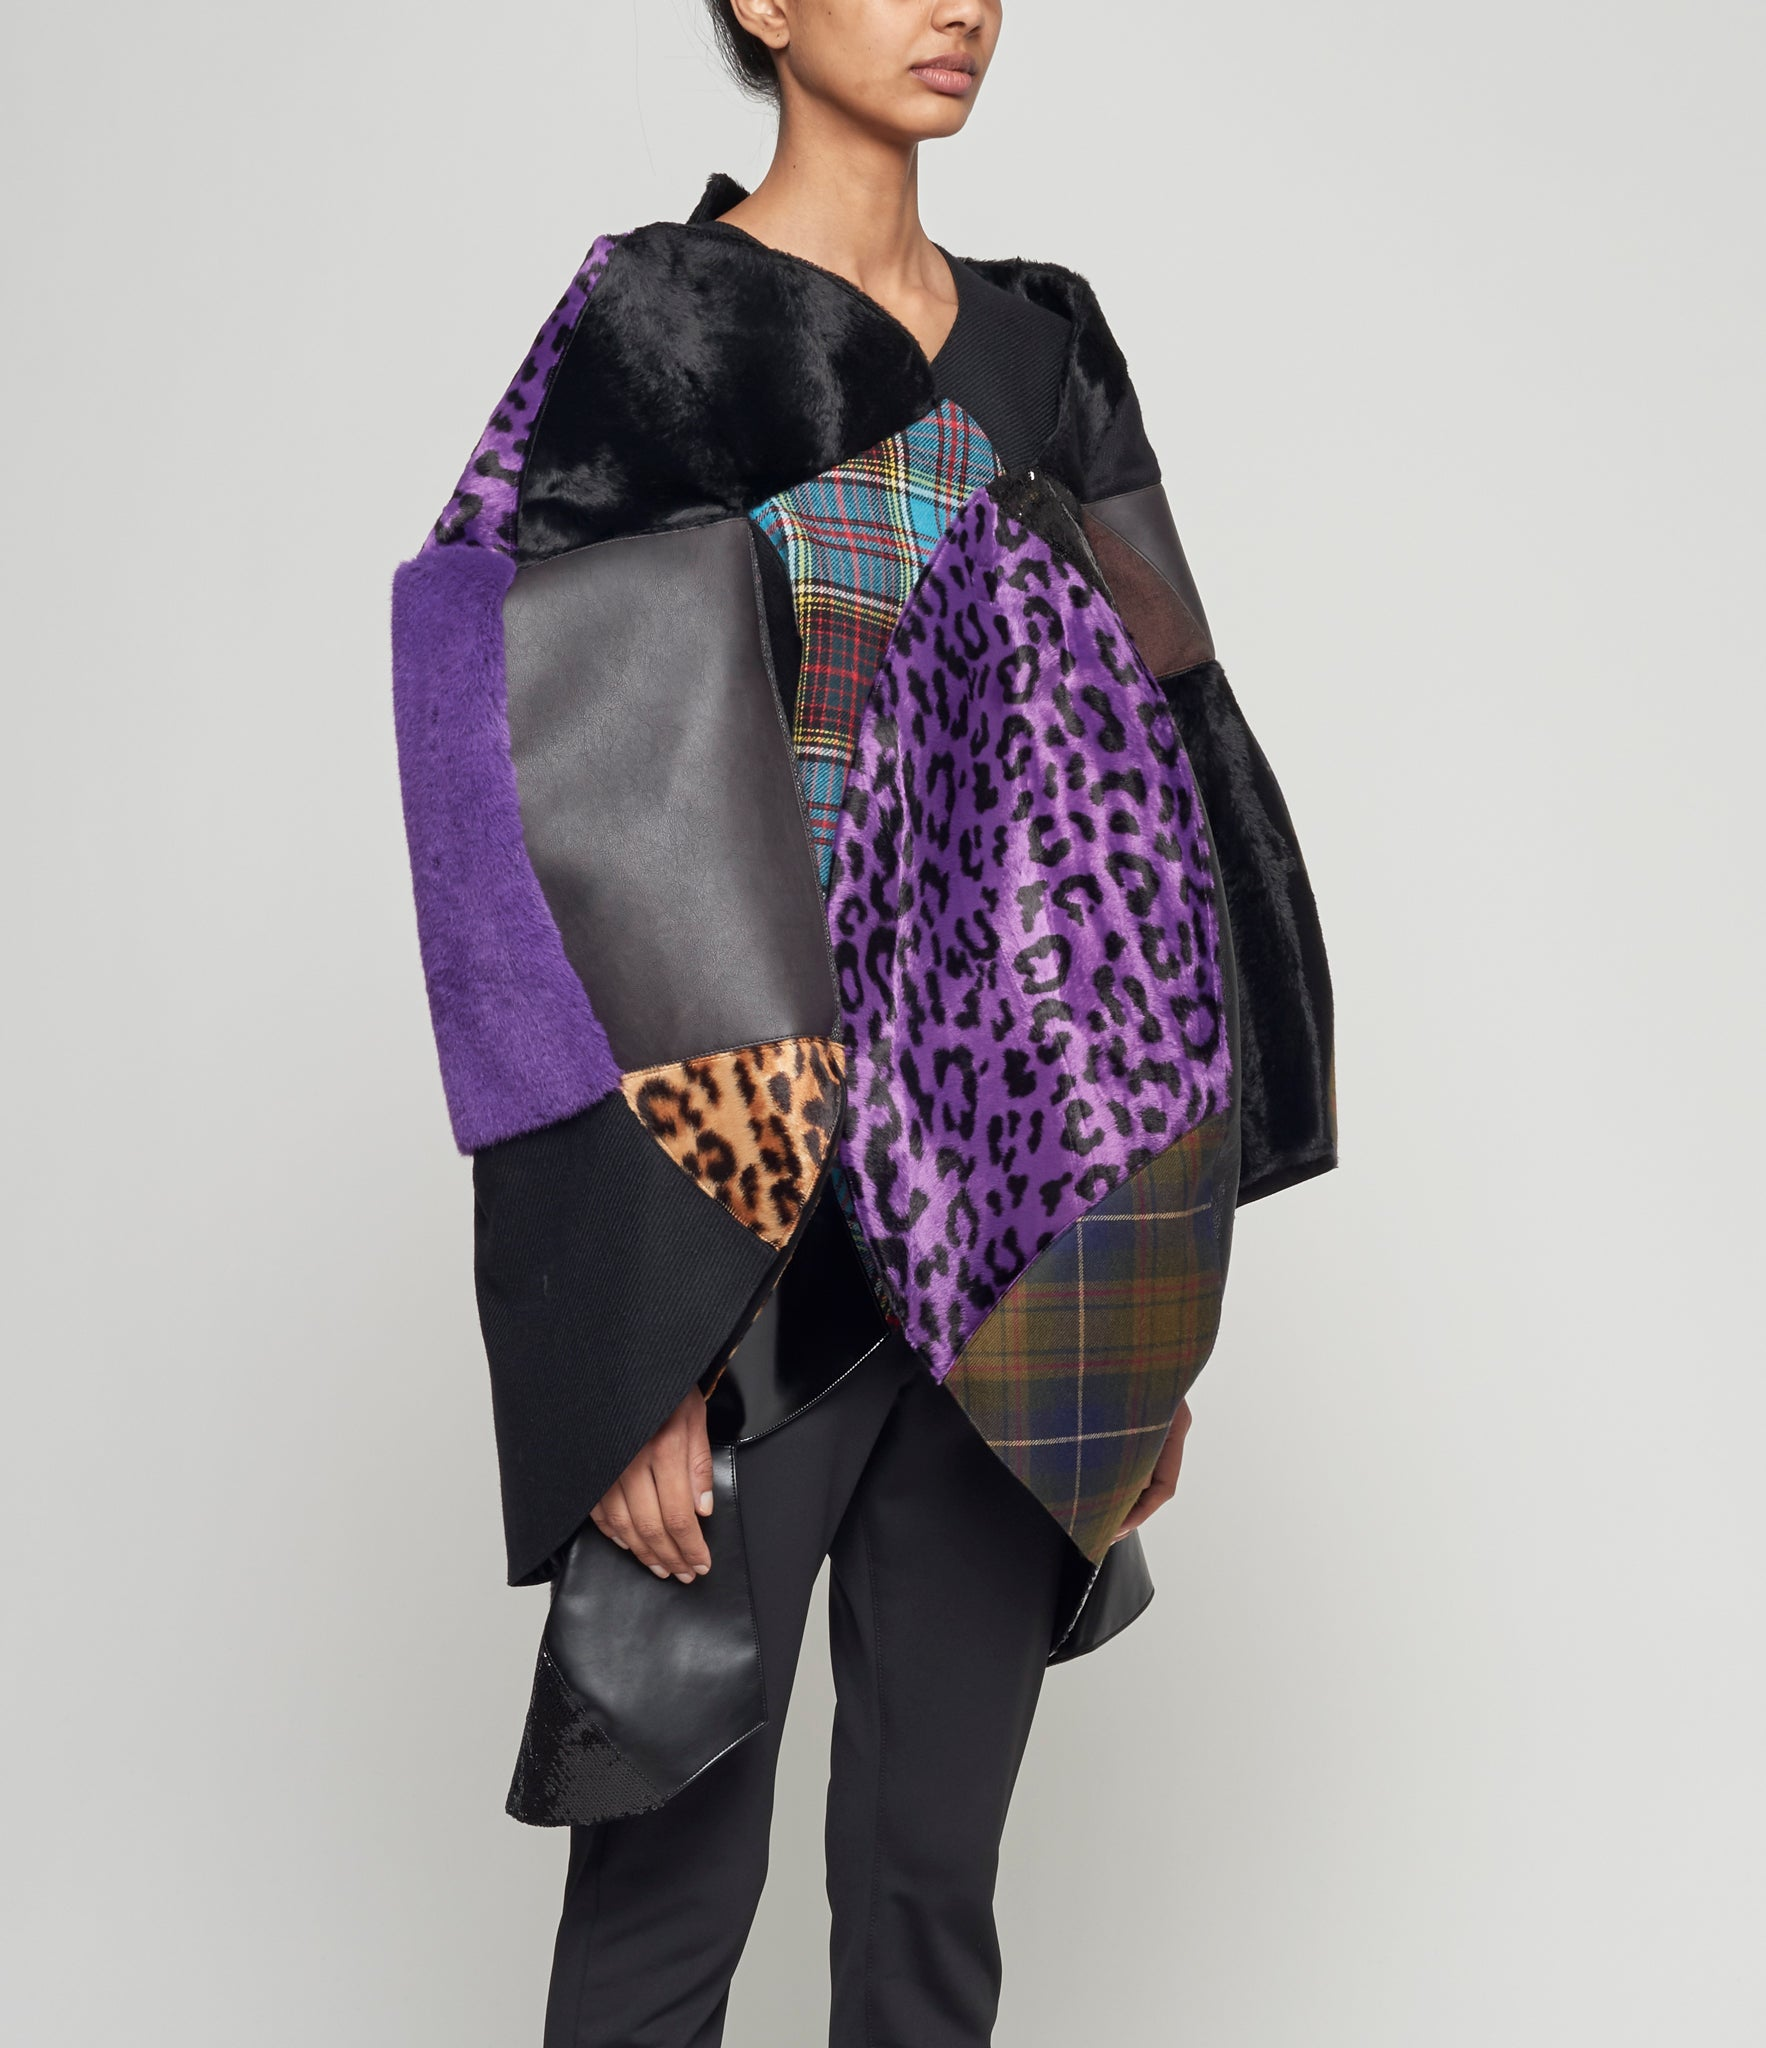 Junya Watanabe Synthetic Leather and Multi Fabric Patchwork Jacket